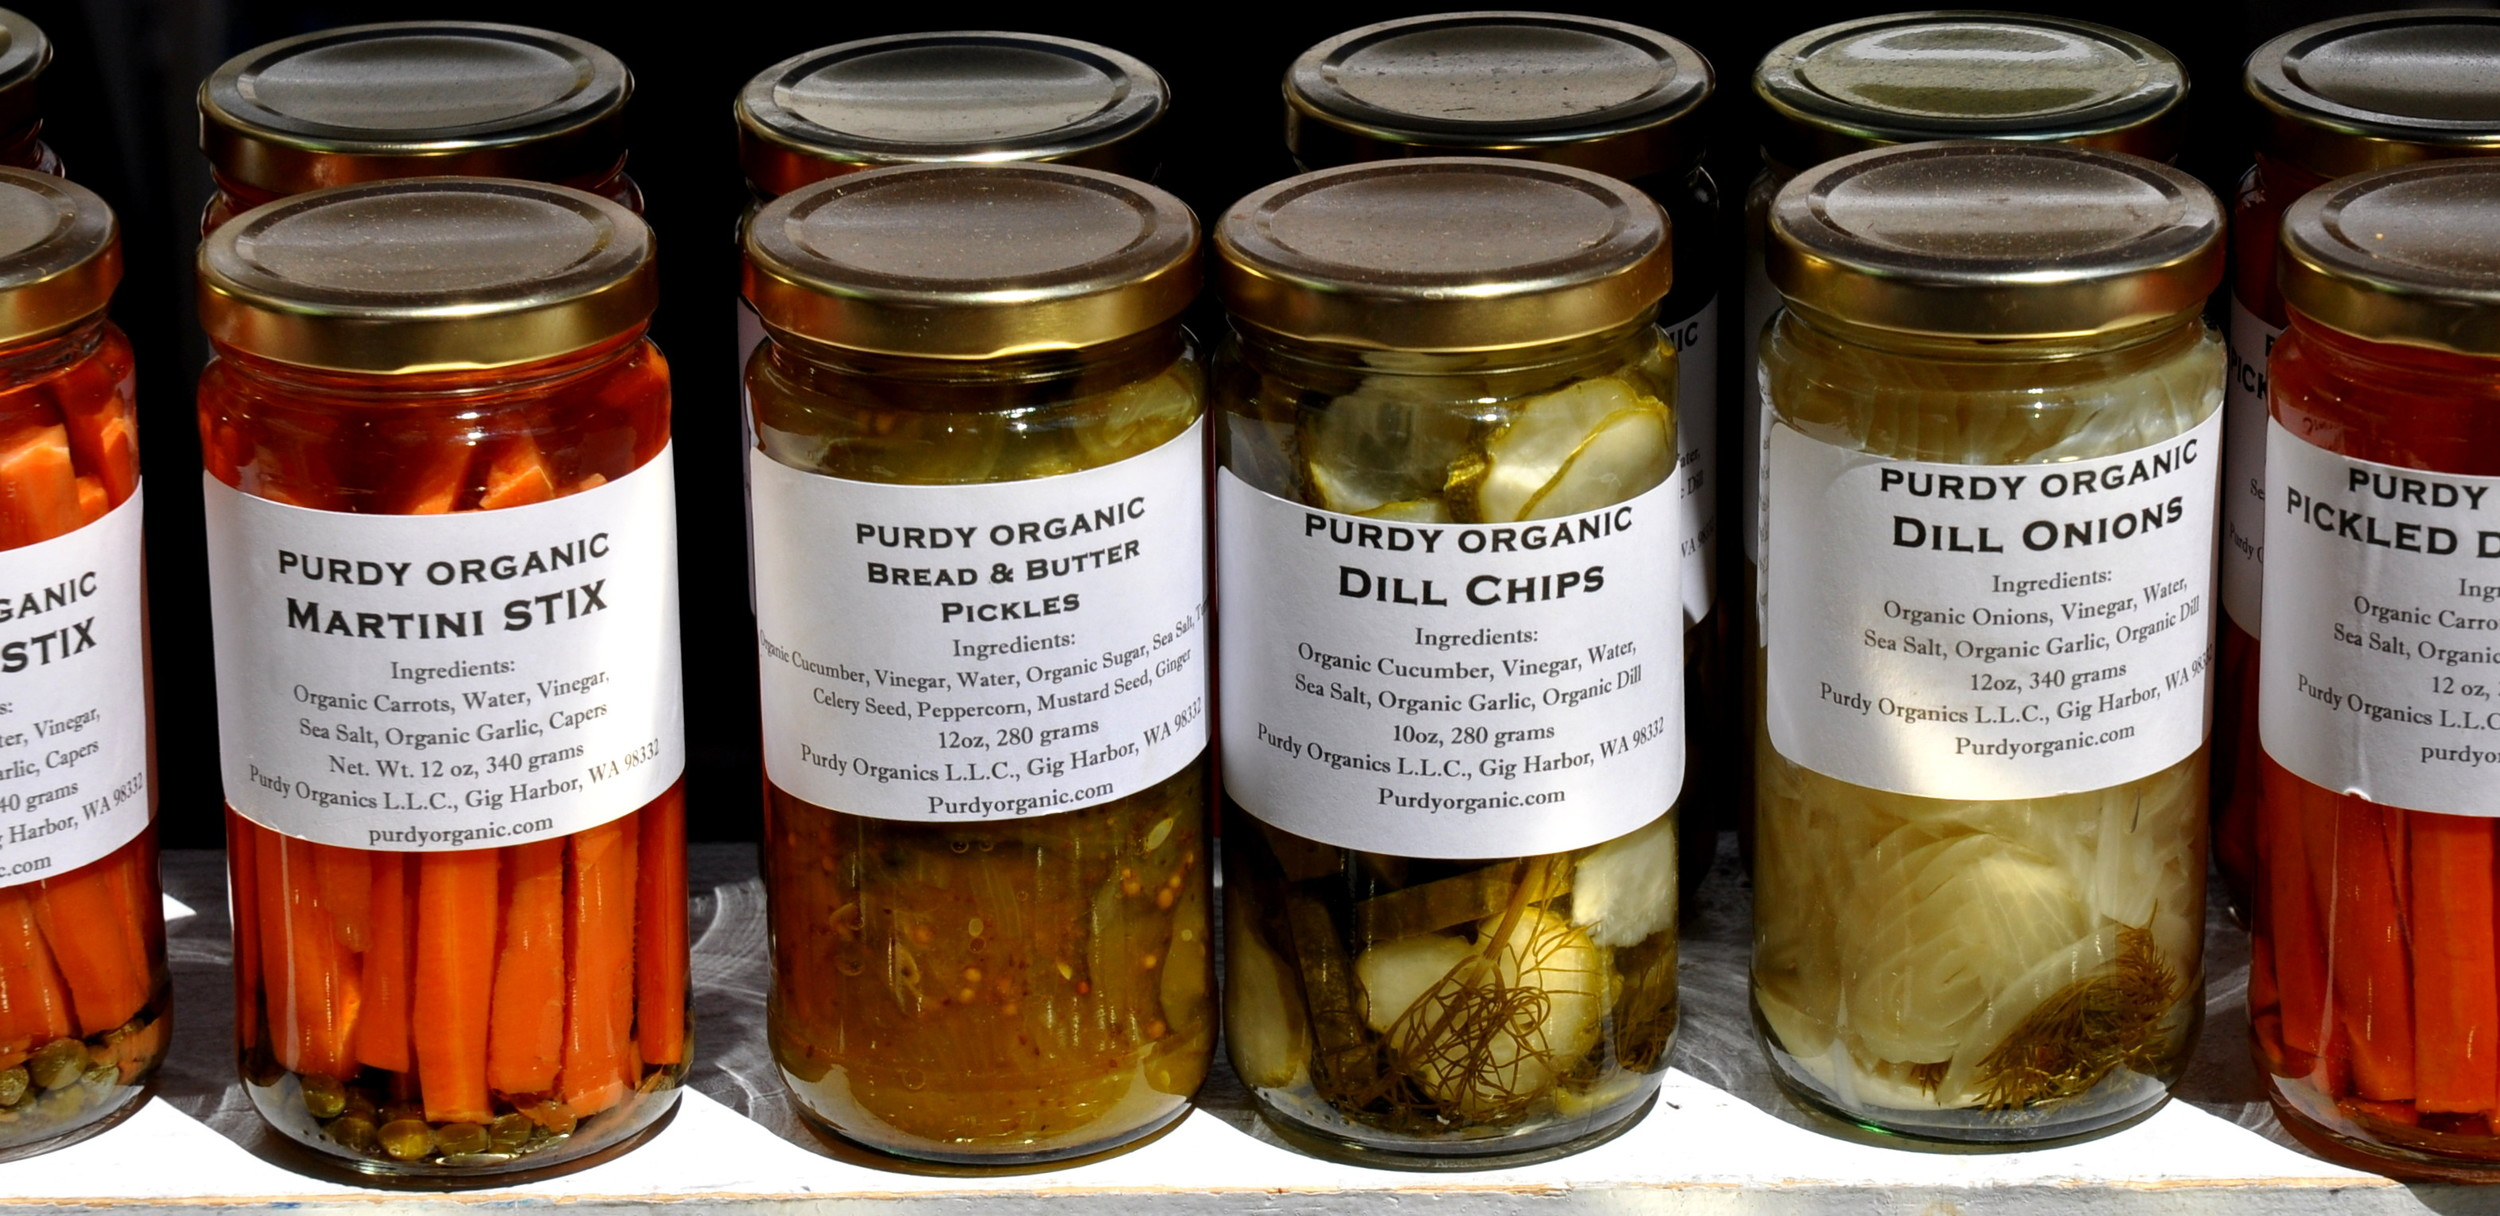 Assorted pickles from Purdy Pickle. Photo copyright 2013 by Zachary D. Lyons.